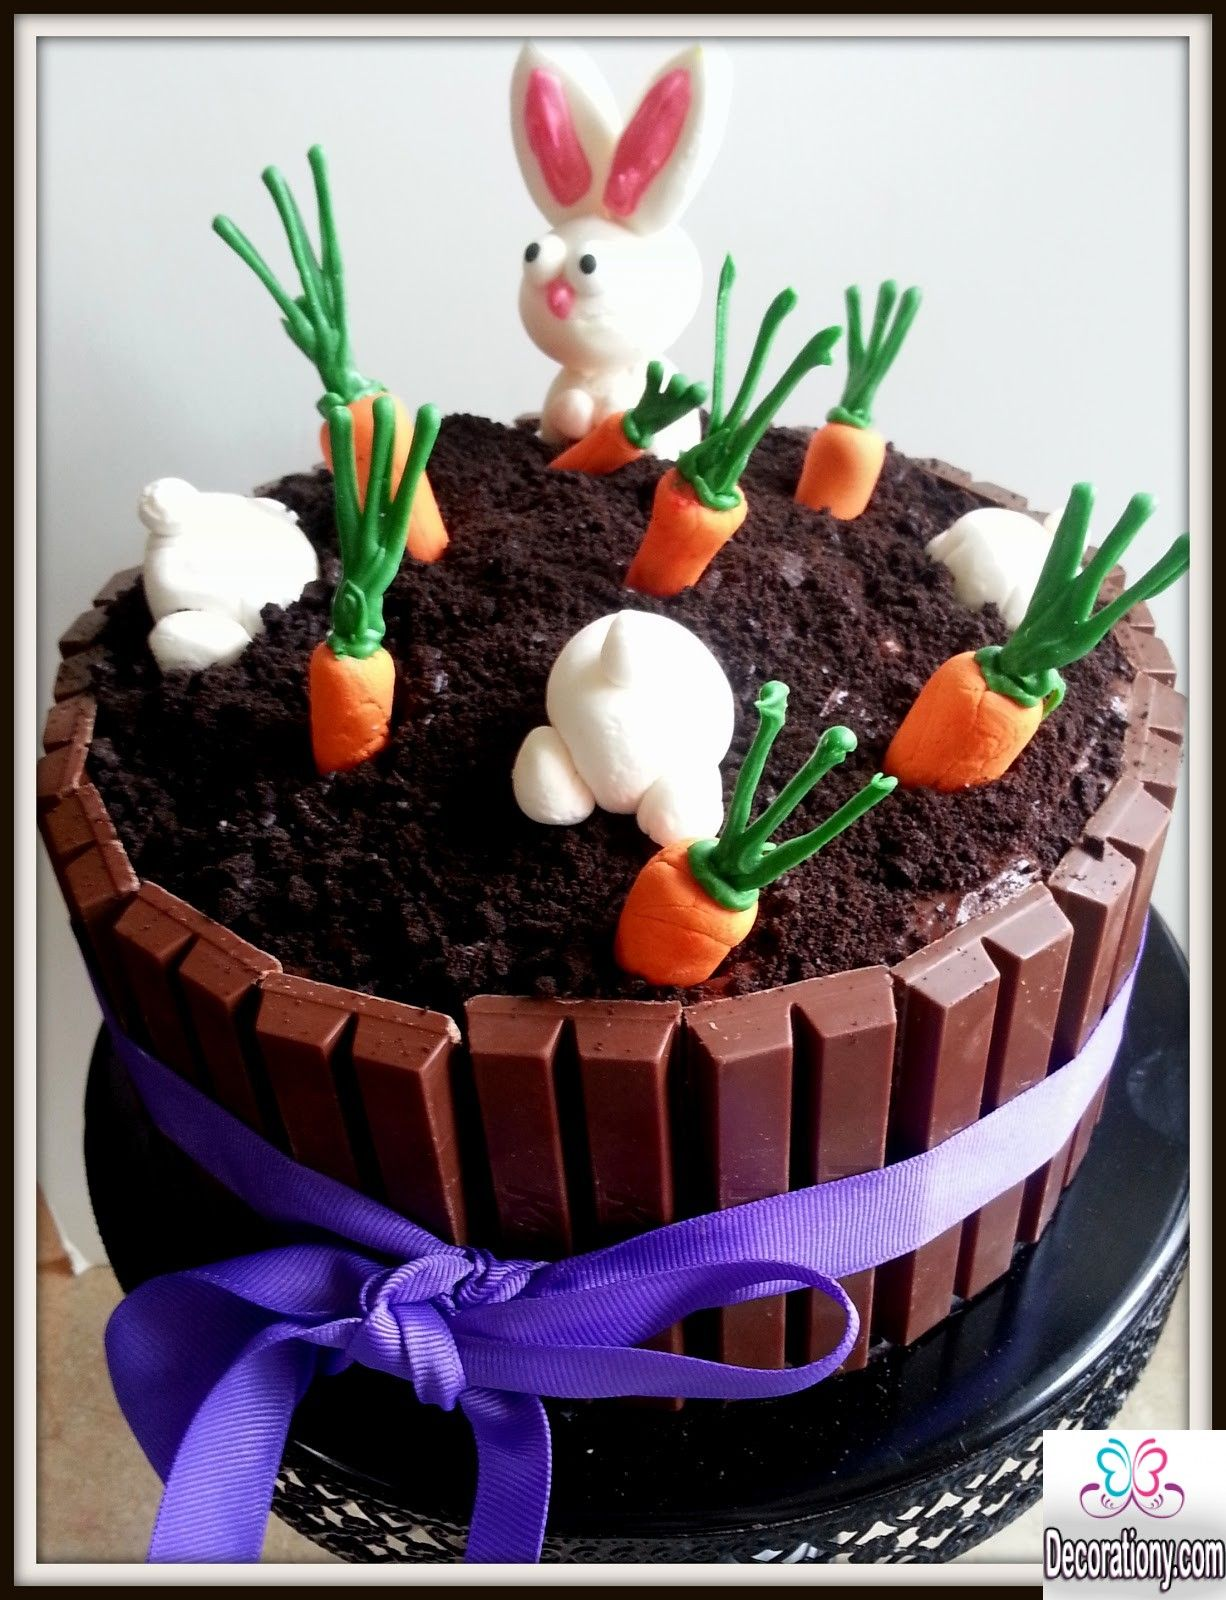 Cute Easter Bunny Cake Decorating Ideas Easter Bunny Cake